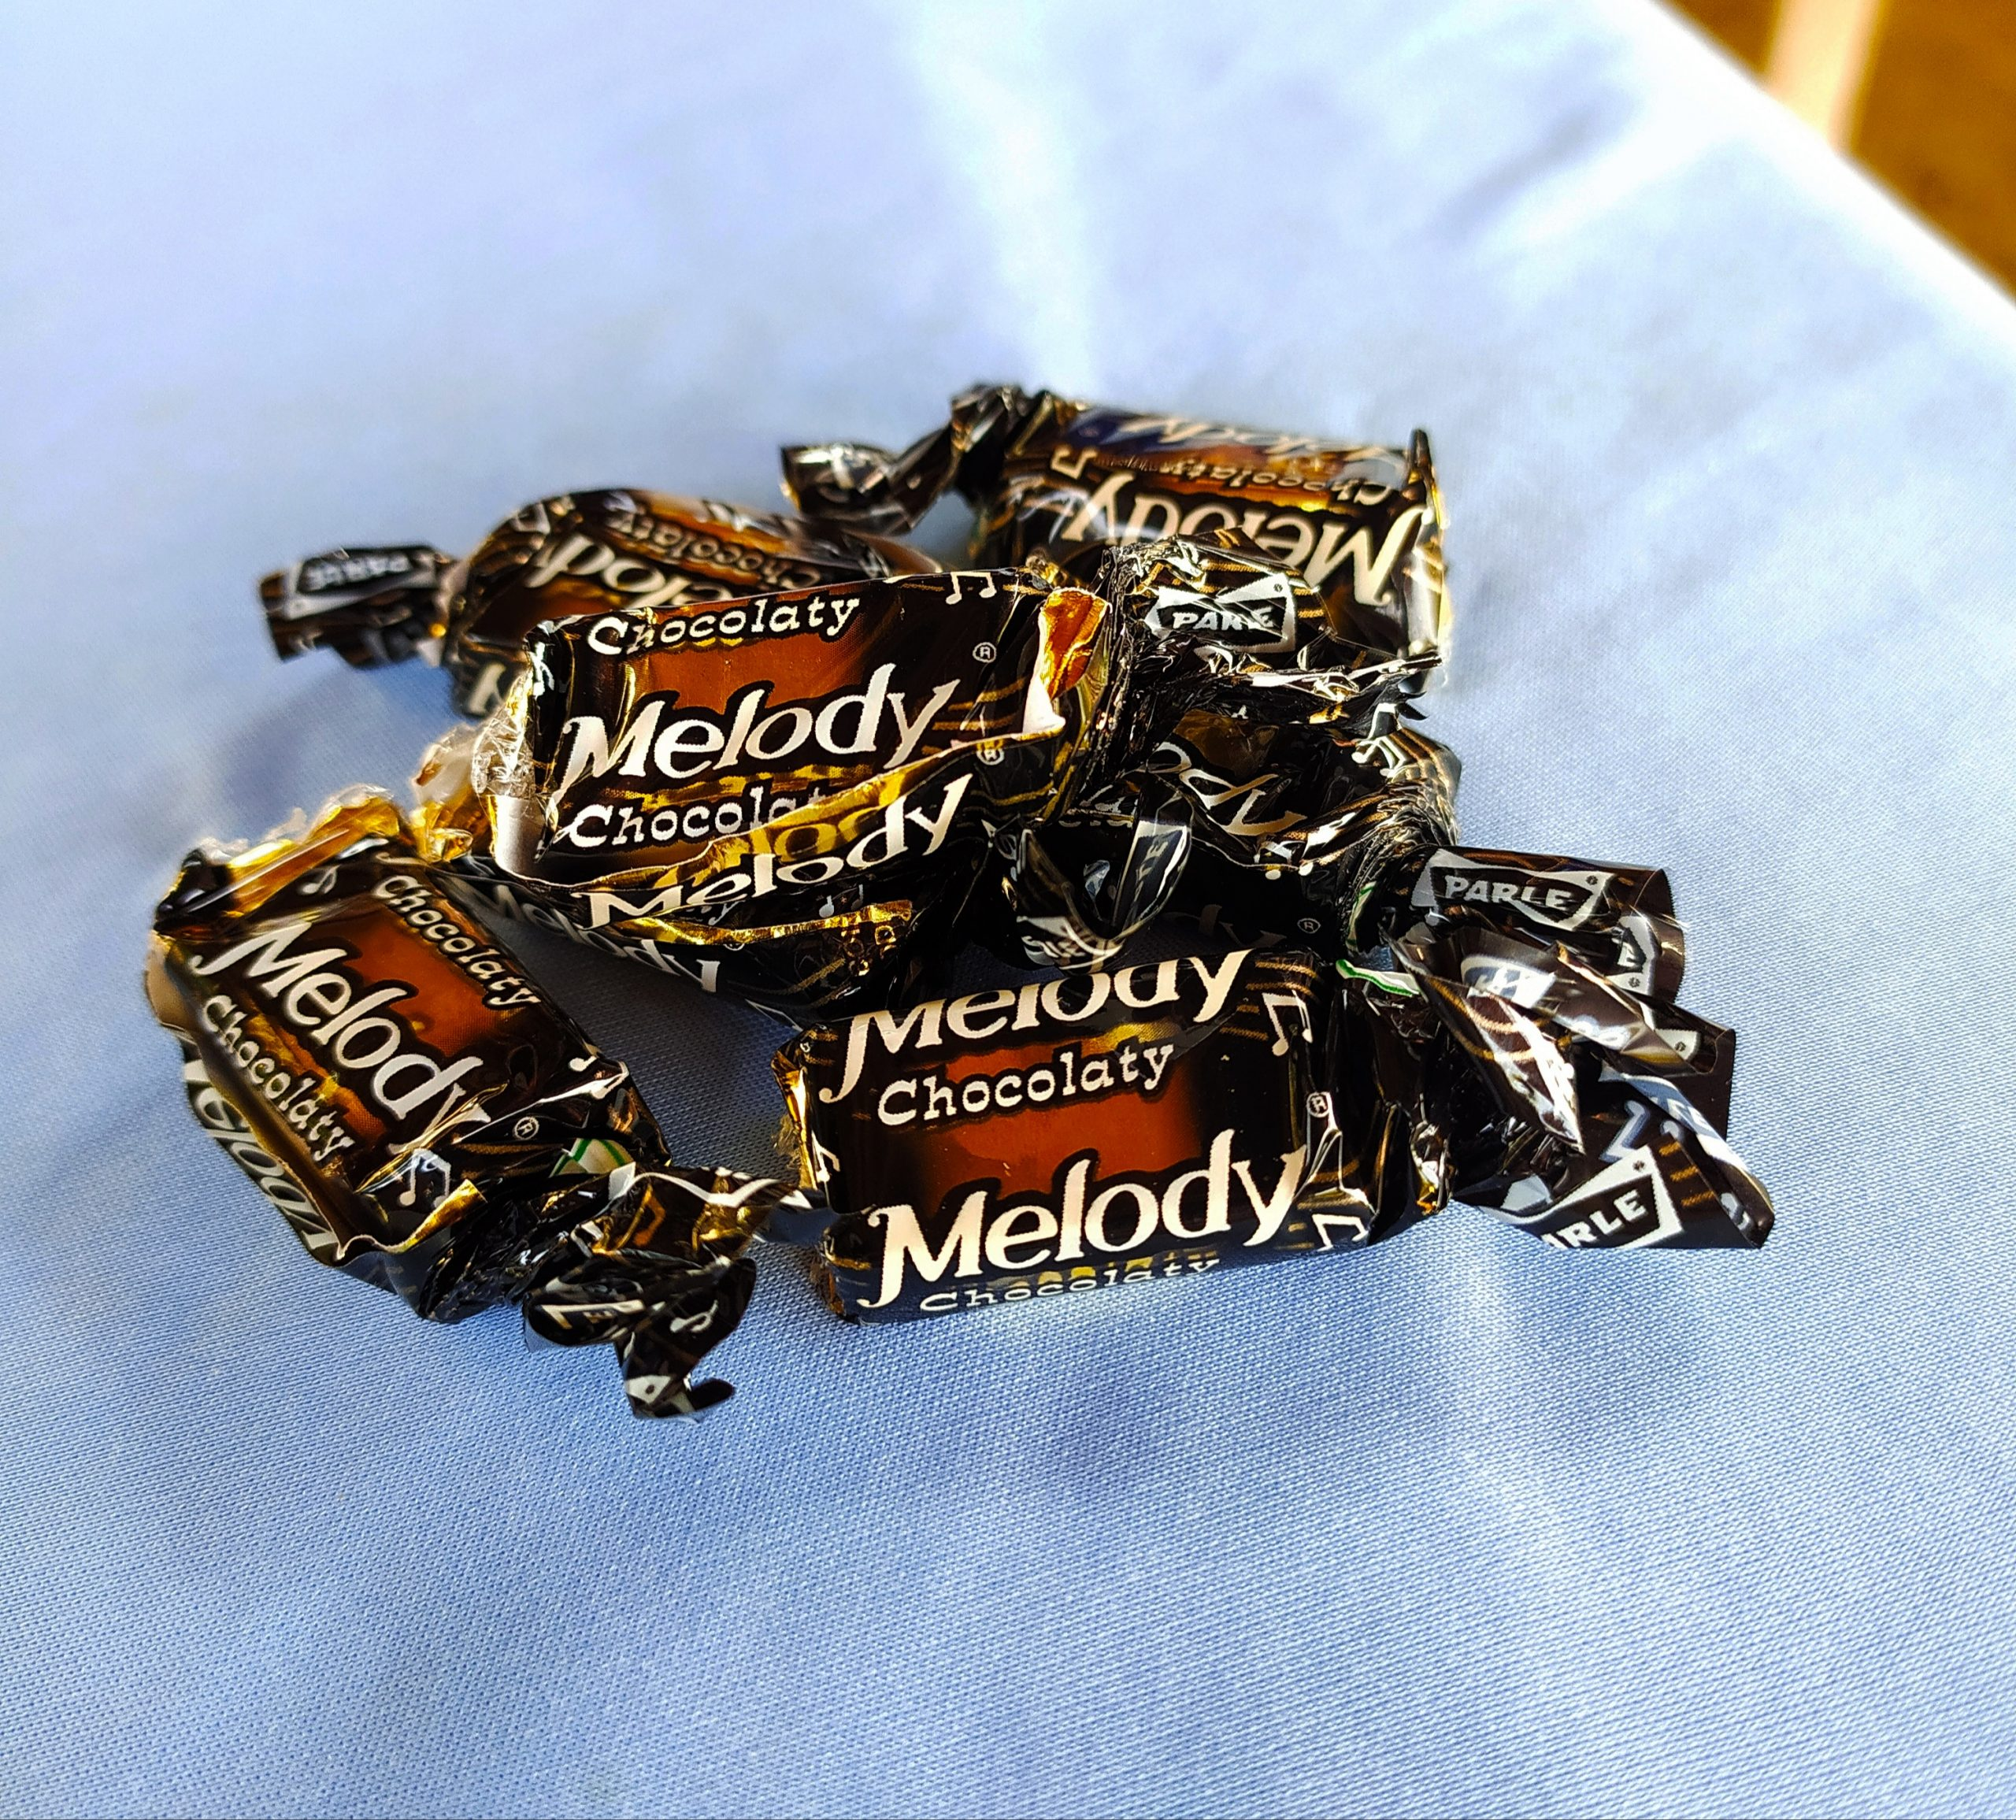 Melody chocolate toffees